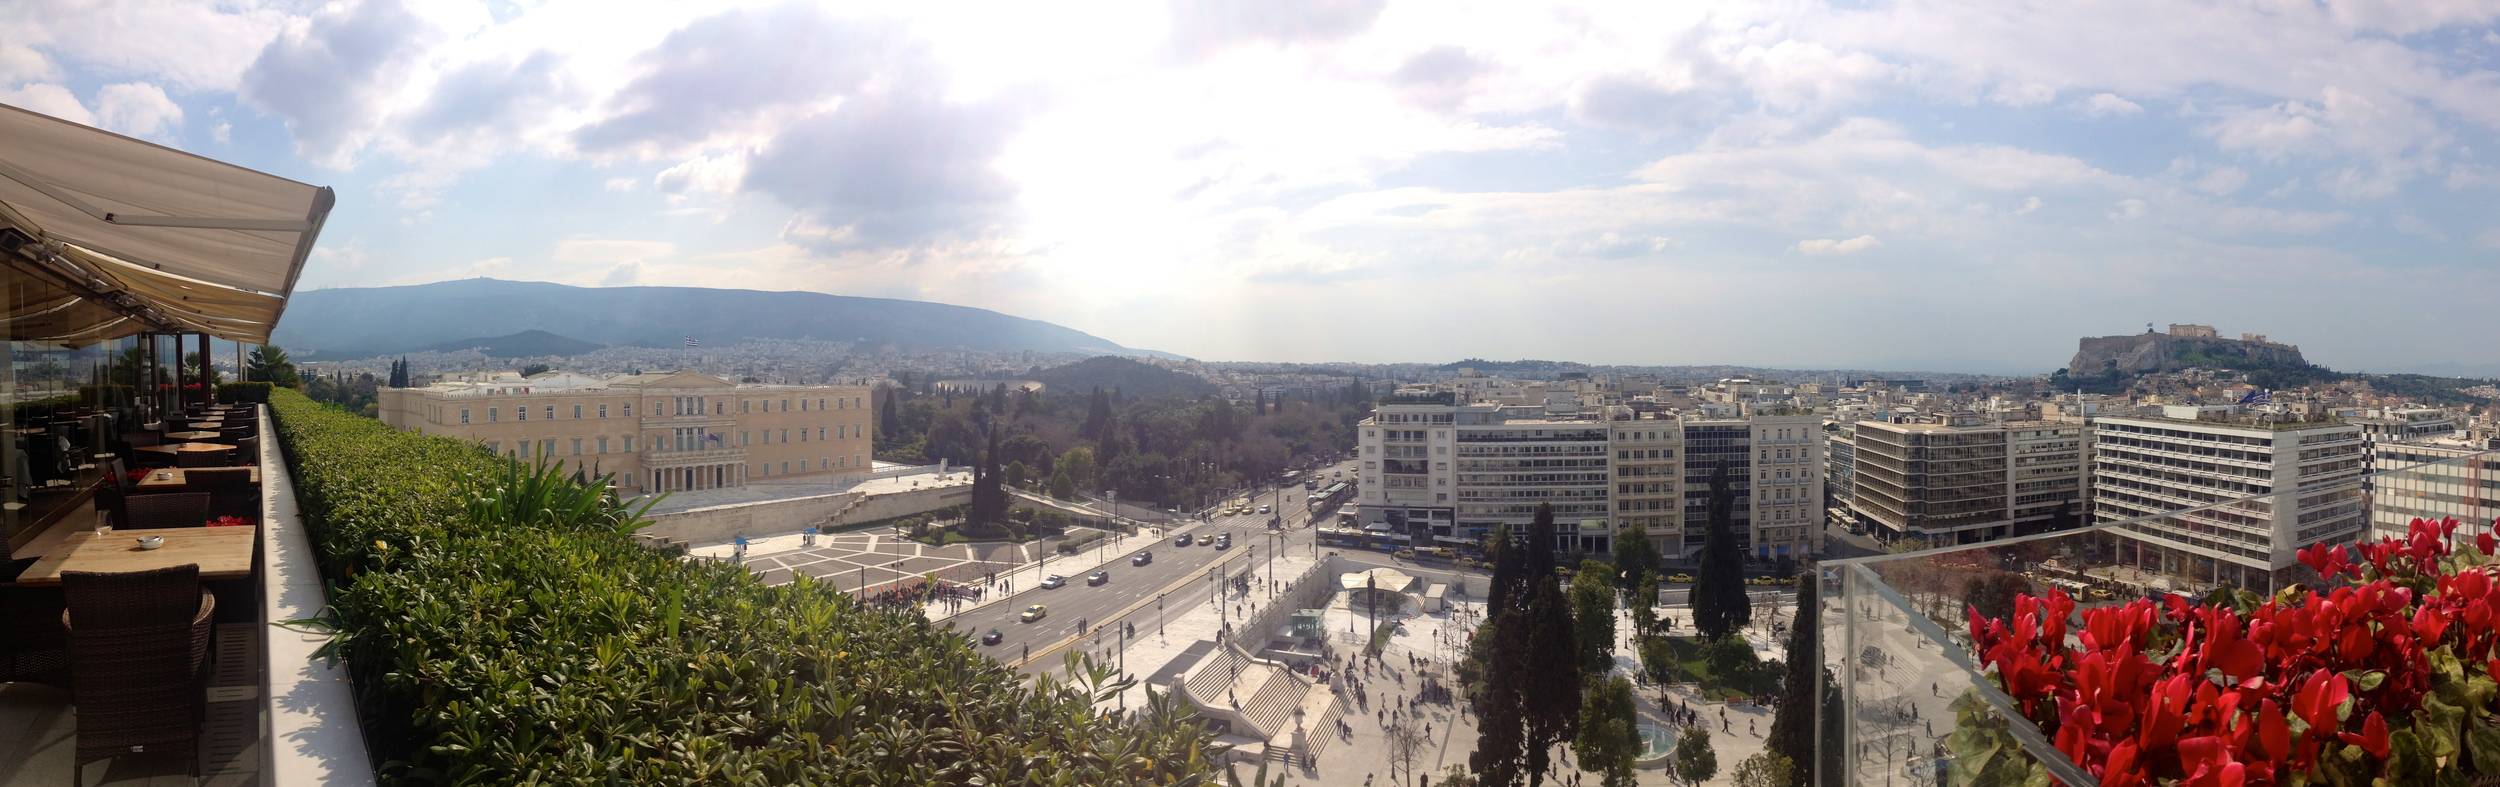 Athens and the Acropolis from our hotel rooftop.